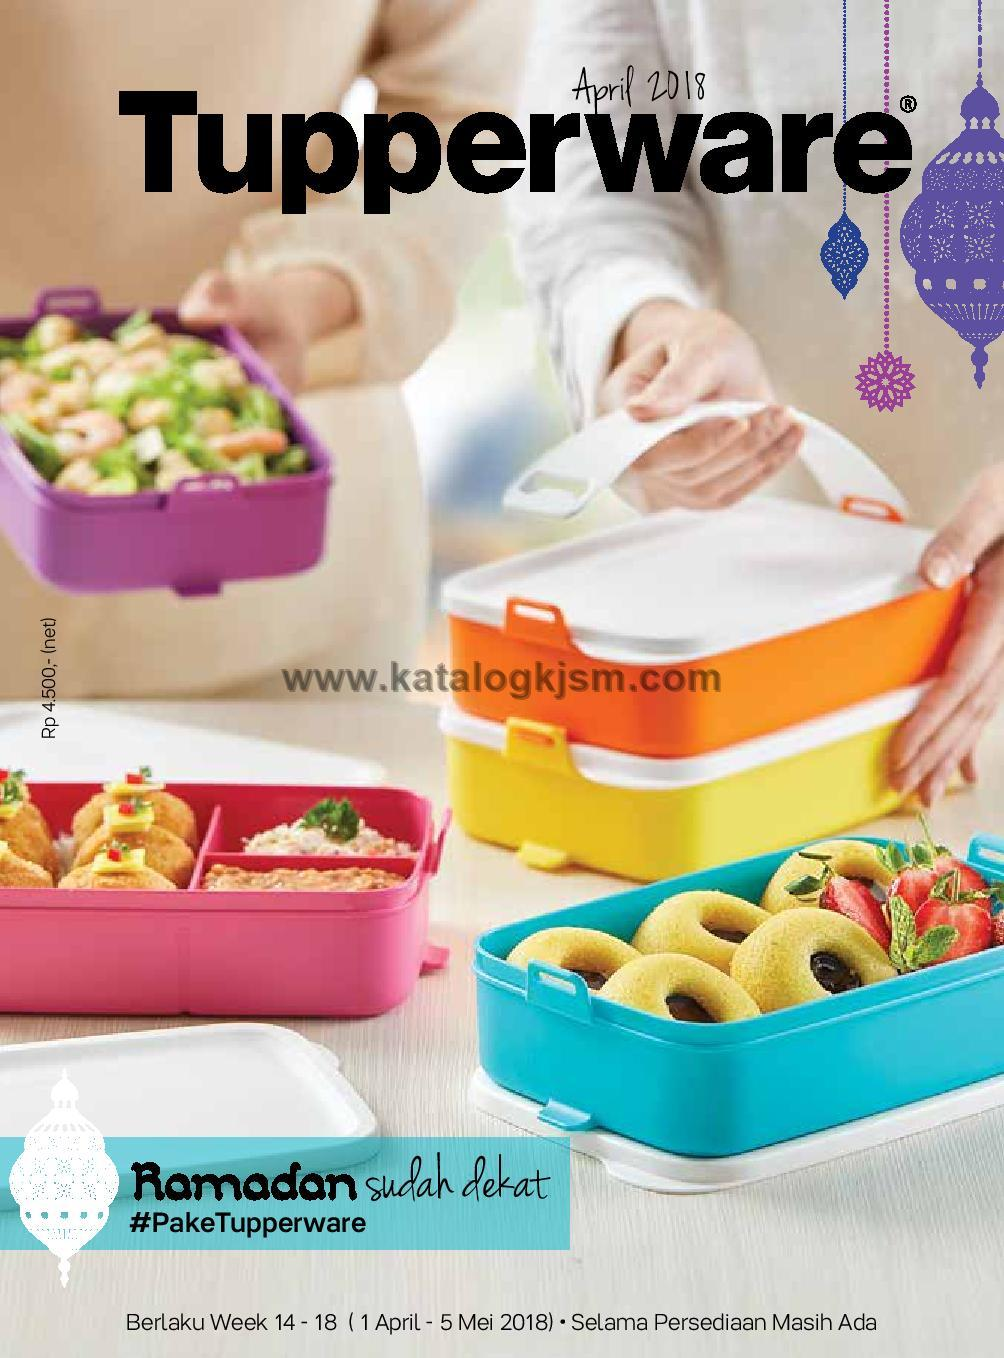 Katalog Promo Tupperware Terbaru April 2018